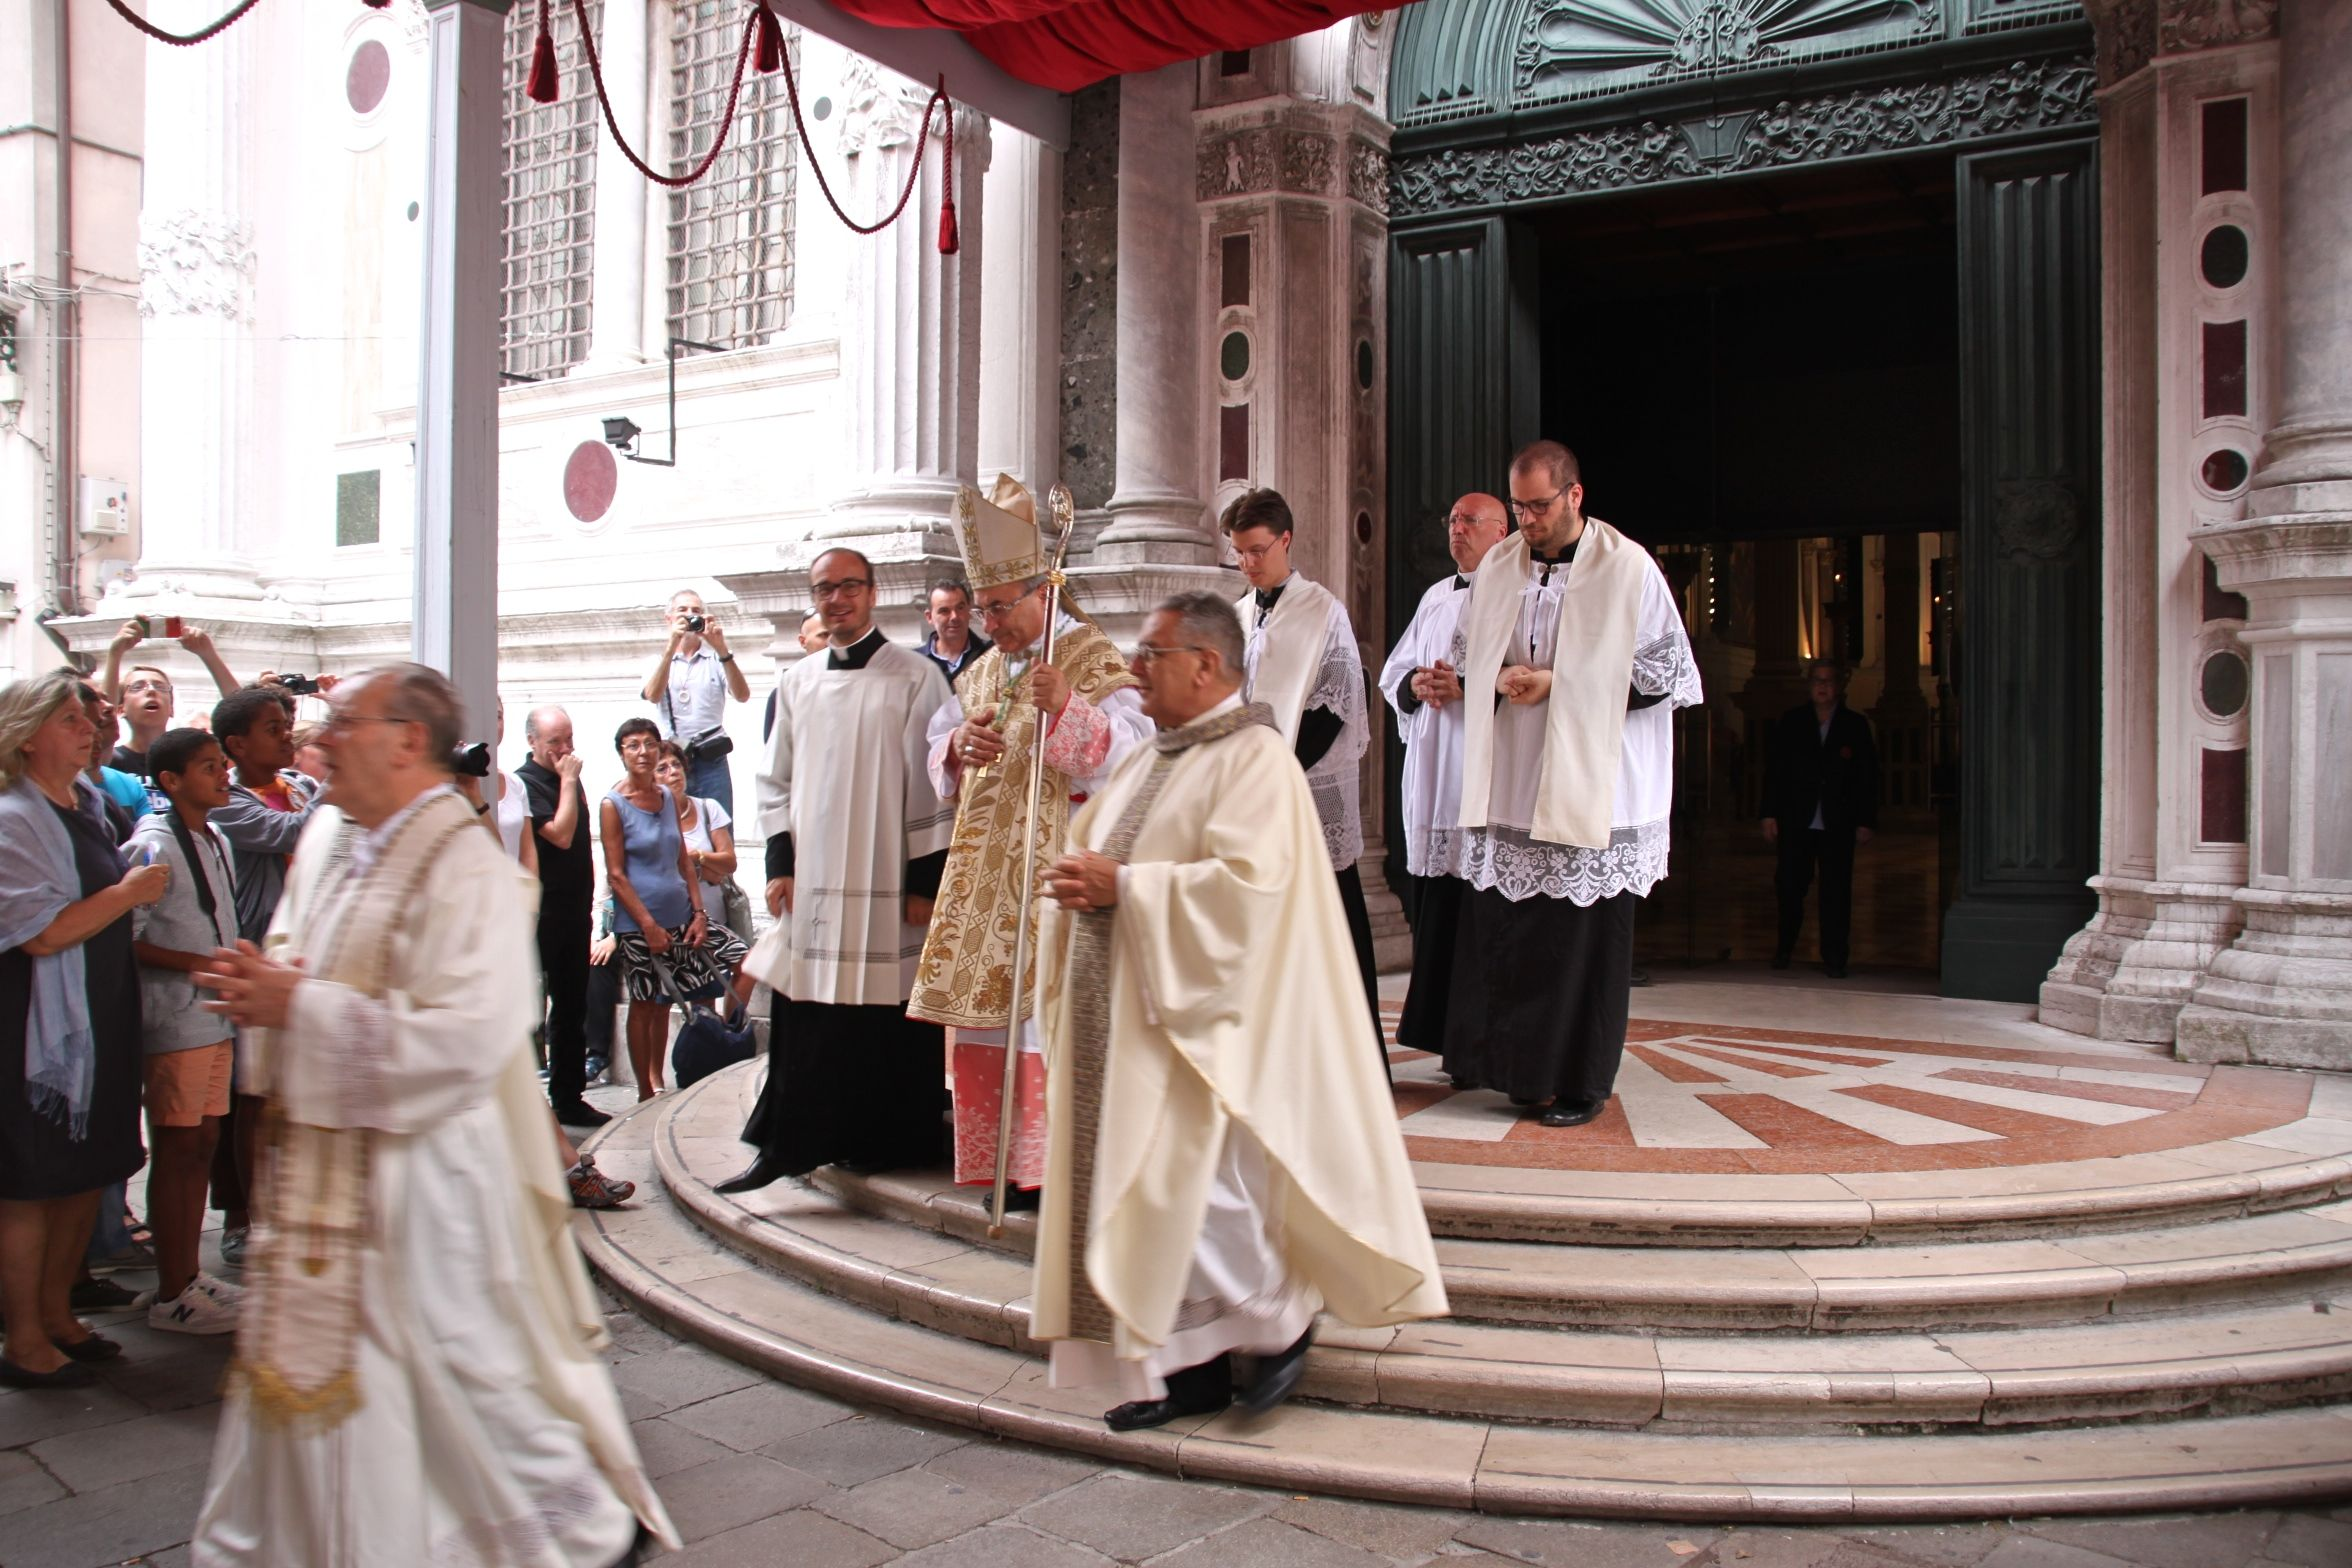 Festa di San Rocco - Clerics leave the Scuola Grande to process the short distance to the church for mass